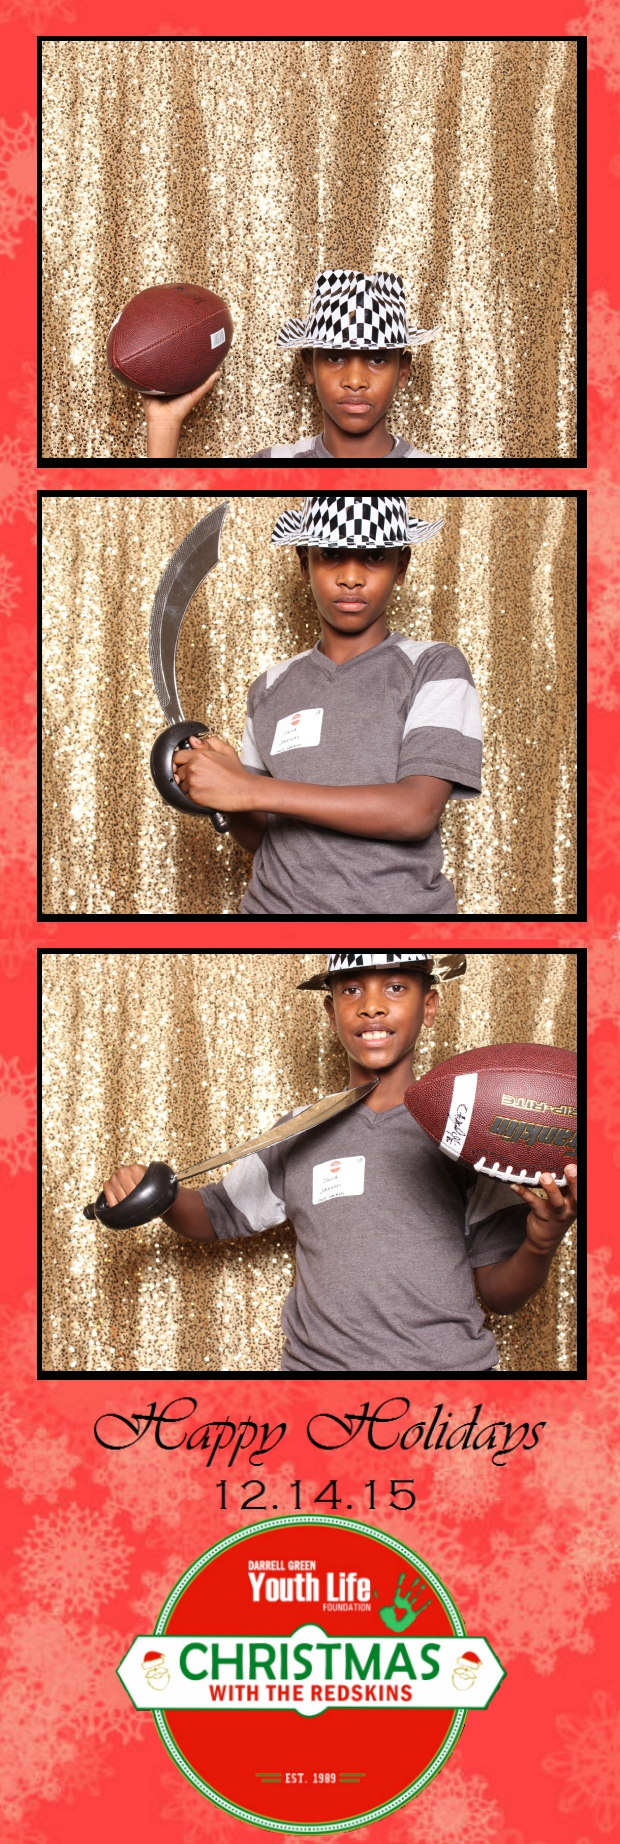 Guest House Events Photo Booth DGYLF Strips (53).jpg